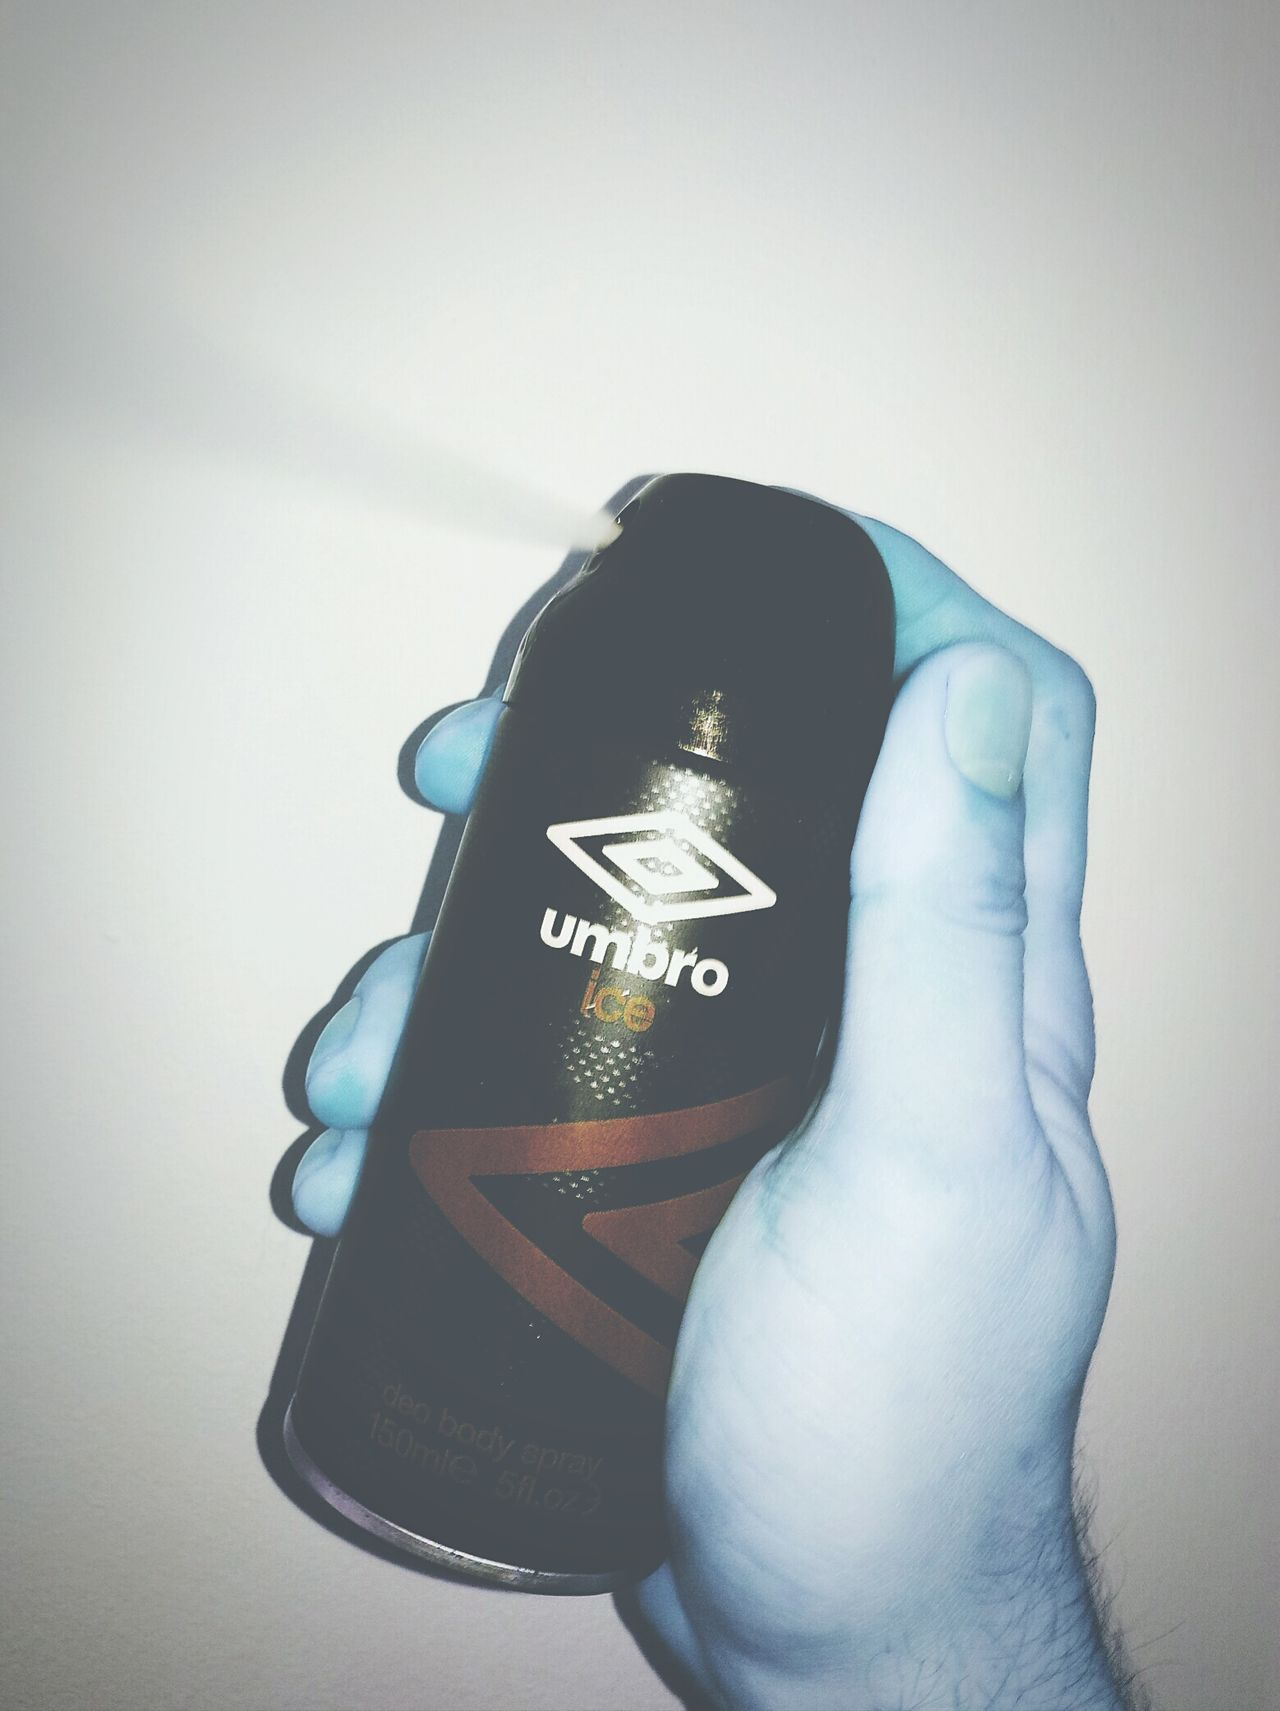 First umbro edit i put together. One Person Human Body Part Fresh On Eyeem  Freshness Ice Editorial Photography Editmasters Hand Spray Deodorant  Phonecamera PhonePhotography Doogee Photooftheday Photography Umbro BYOPaper! EyeEm Best Shots Edited Edit White Background The Street Photographer - 2017 EyeEm Awards Fresh Creativity Creative